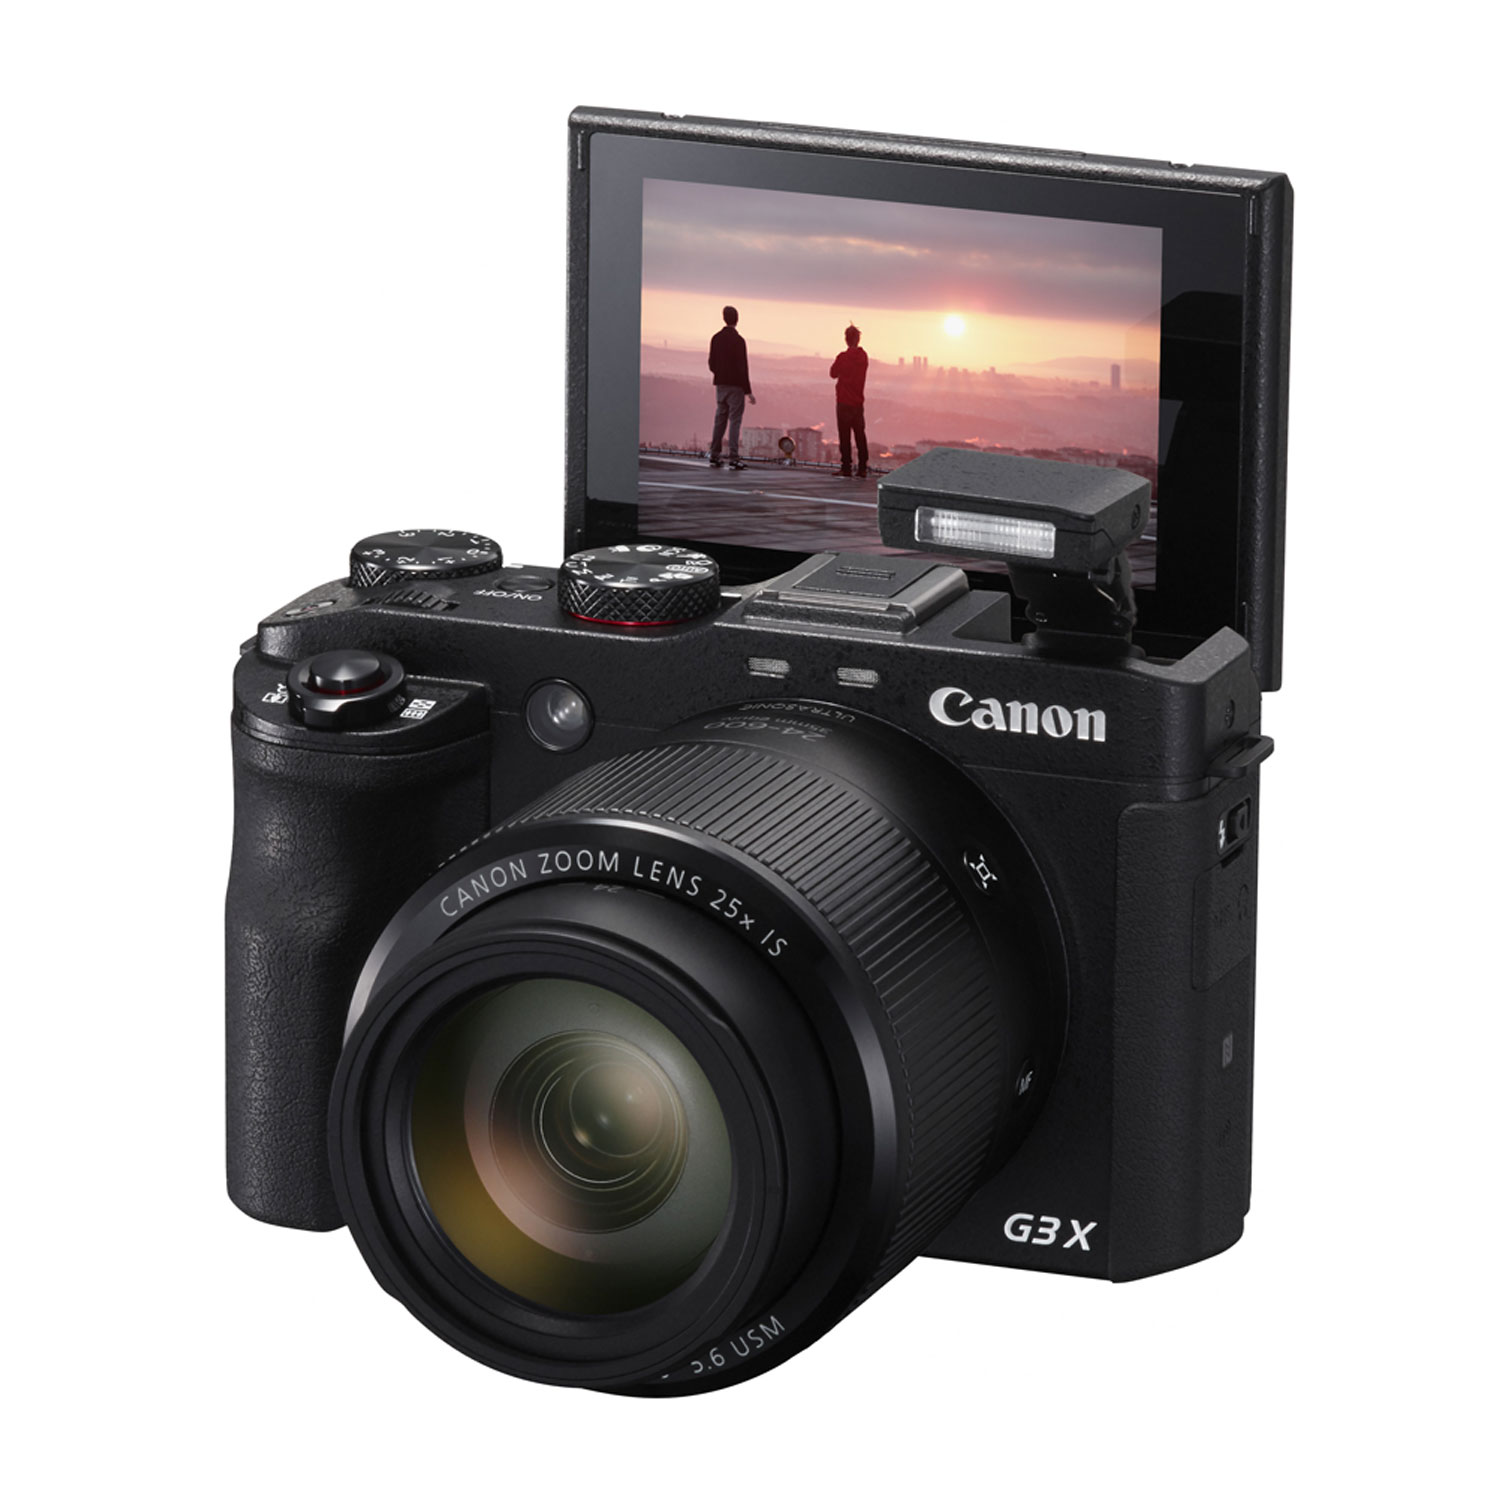 canon powershot g3 x appareil photo num rique canon sur. Black Bedroom Furniture Sets. Home Design Ideas